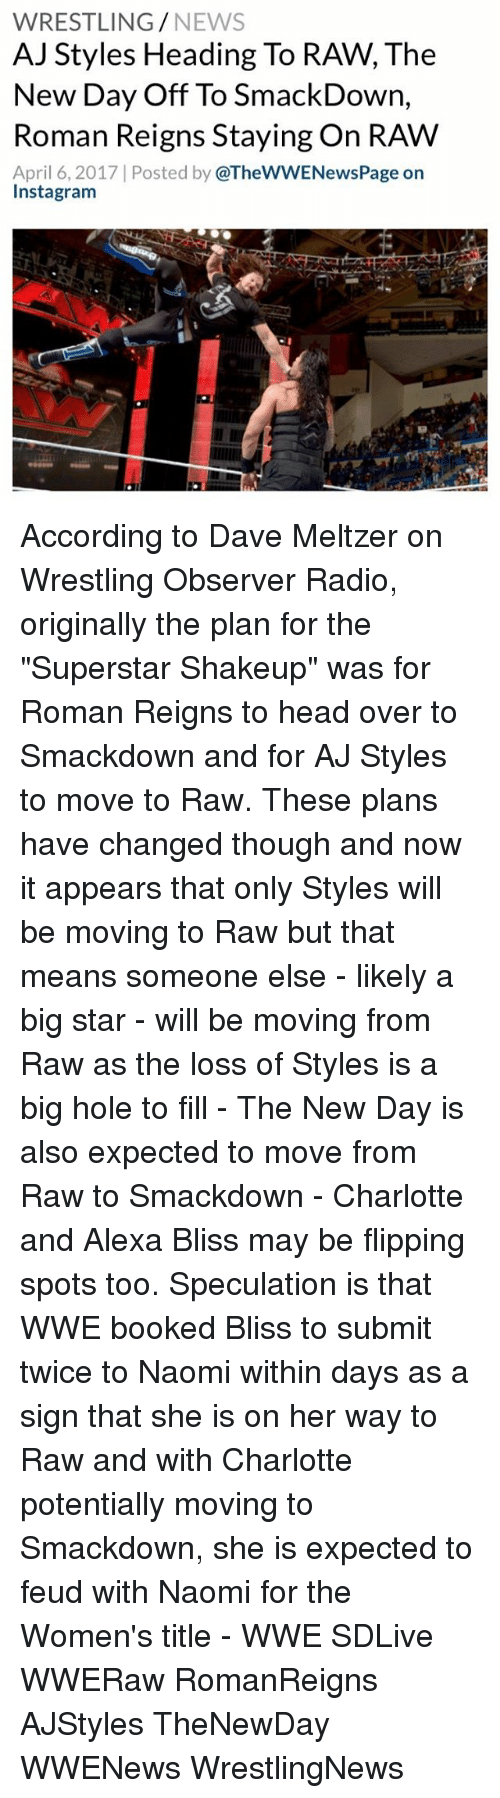 """Aj Styles: WRESTLING  NEWS  AJ Styles Heading To RAW, The  New Day Off To SmackDown,  Roman Reigns Staying On RAW  April 6, 2017 Posted by  @TheWWENewsPage on  Instagram According to Dave Meltzer on Wrestling Observer Radio, originally the plan for the """"Superstar Shakeup"""" was for Roman Reigns to head over to Smackdown and for AJ Styles to move to Raw. These plans have changed though and now it appears that only Styles will be moving to Raw but that means someone else - likely a big star - will be moving from Raw as the loss of Styles is a big hole to fill - The New Day is also expected to move from Raw to Smackdown - Charlotte and Alexa Bliss may be flipping spots too. Speculation is that WWE booked Bliss to submit twice to Naomi within days as a sign that she is on her way to Raw and with Charlotte potentially moving to Smackdown, she is expected to feud with Naomi for the Women's title - WWE SDLive WWERaw RomanReigns AJStyles TheNewDay WWENews WrestlingNews"""